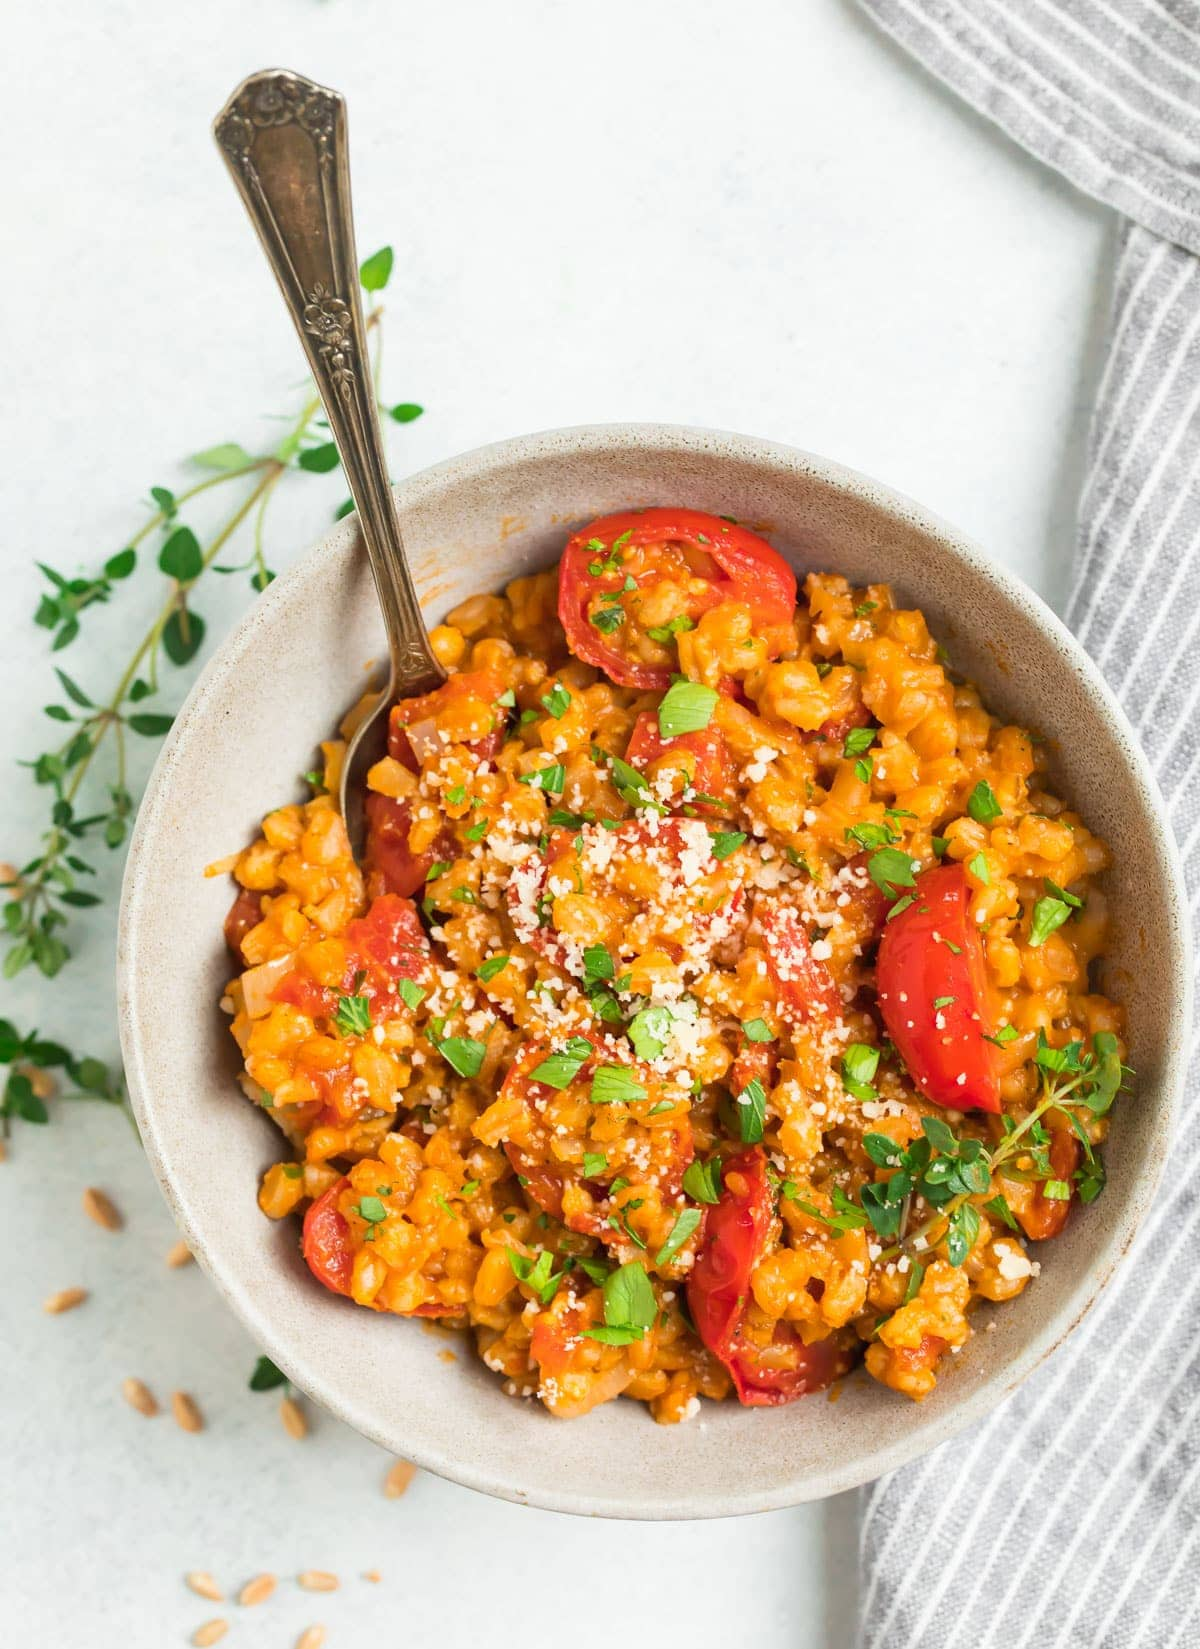 Farro Risotto with Tomatoes, basil, and Parmesan in a bowl with a spoon